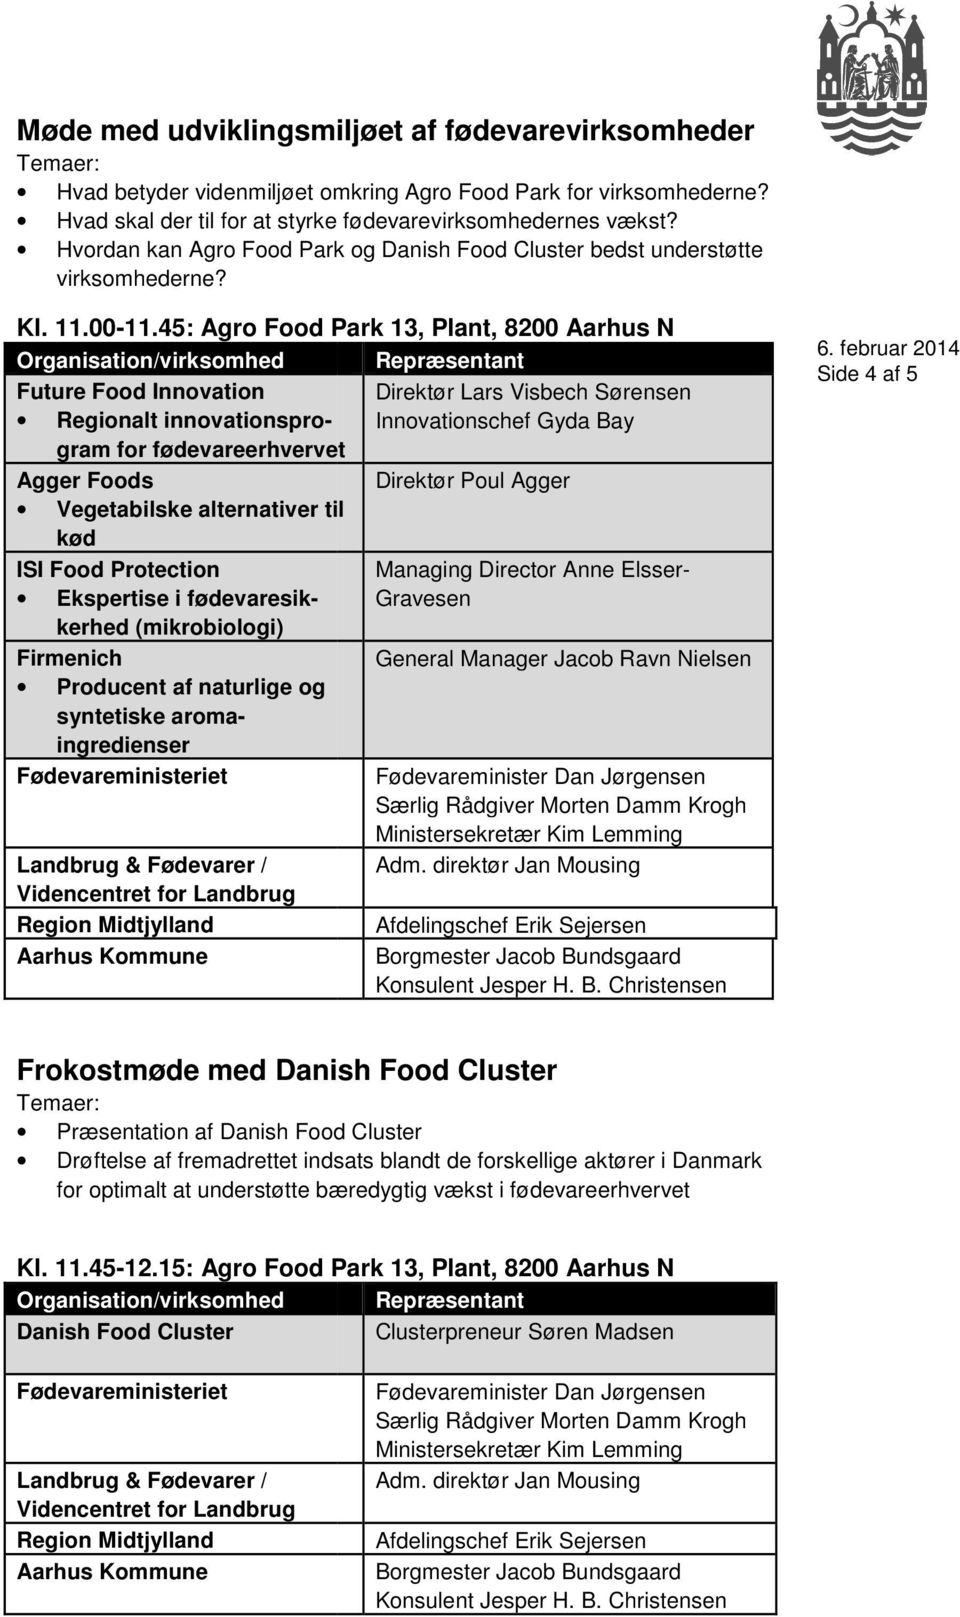 45: Agro Food Park 13, Plant, 8200 Aarhus N Future Food Innovation Direktør Lars Visbech Sørensen Regionalt innovationsprogram for fødevareerhvervetrhvervet Innovationschef Gyda Bay Agger Foods